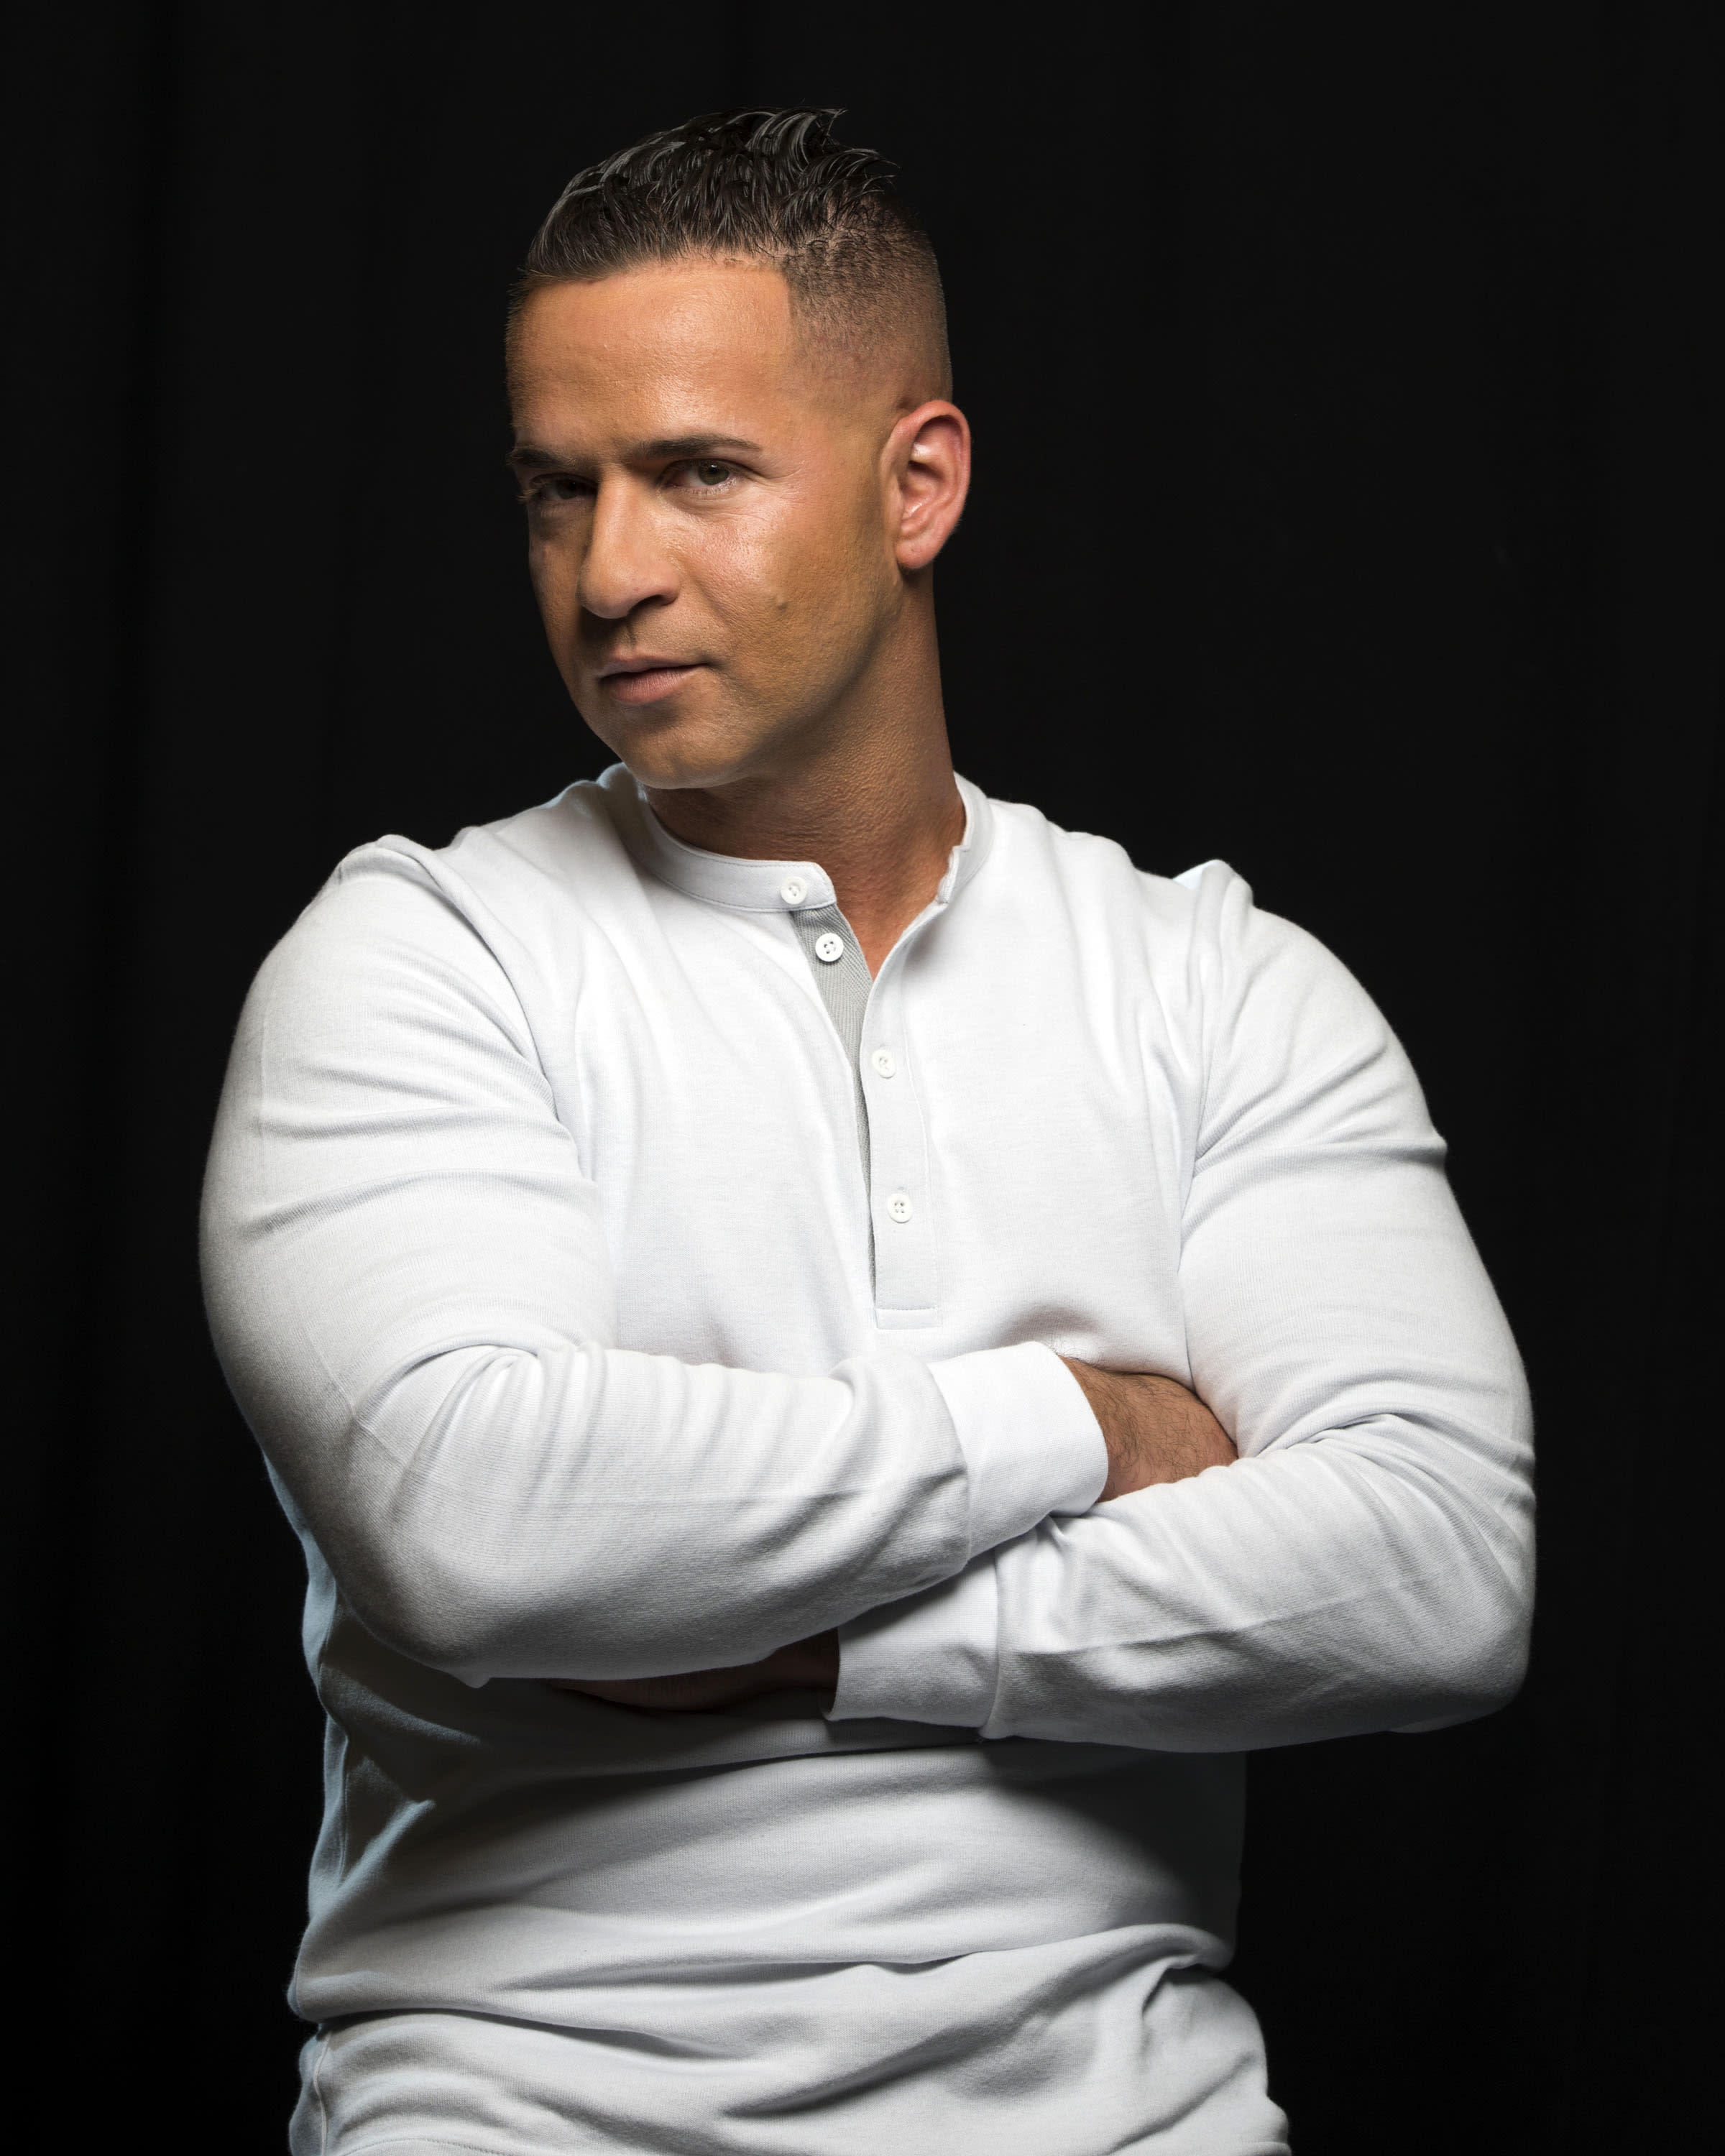 Jersey Shores Mike The Situation Sorrentino faces 15